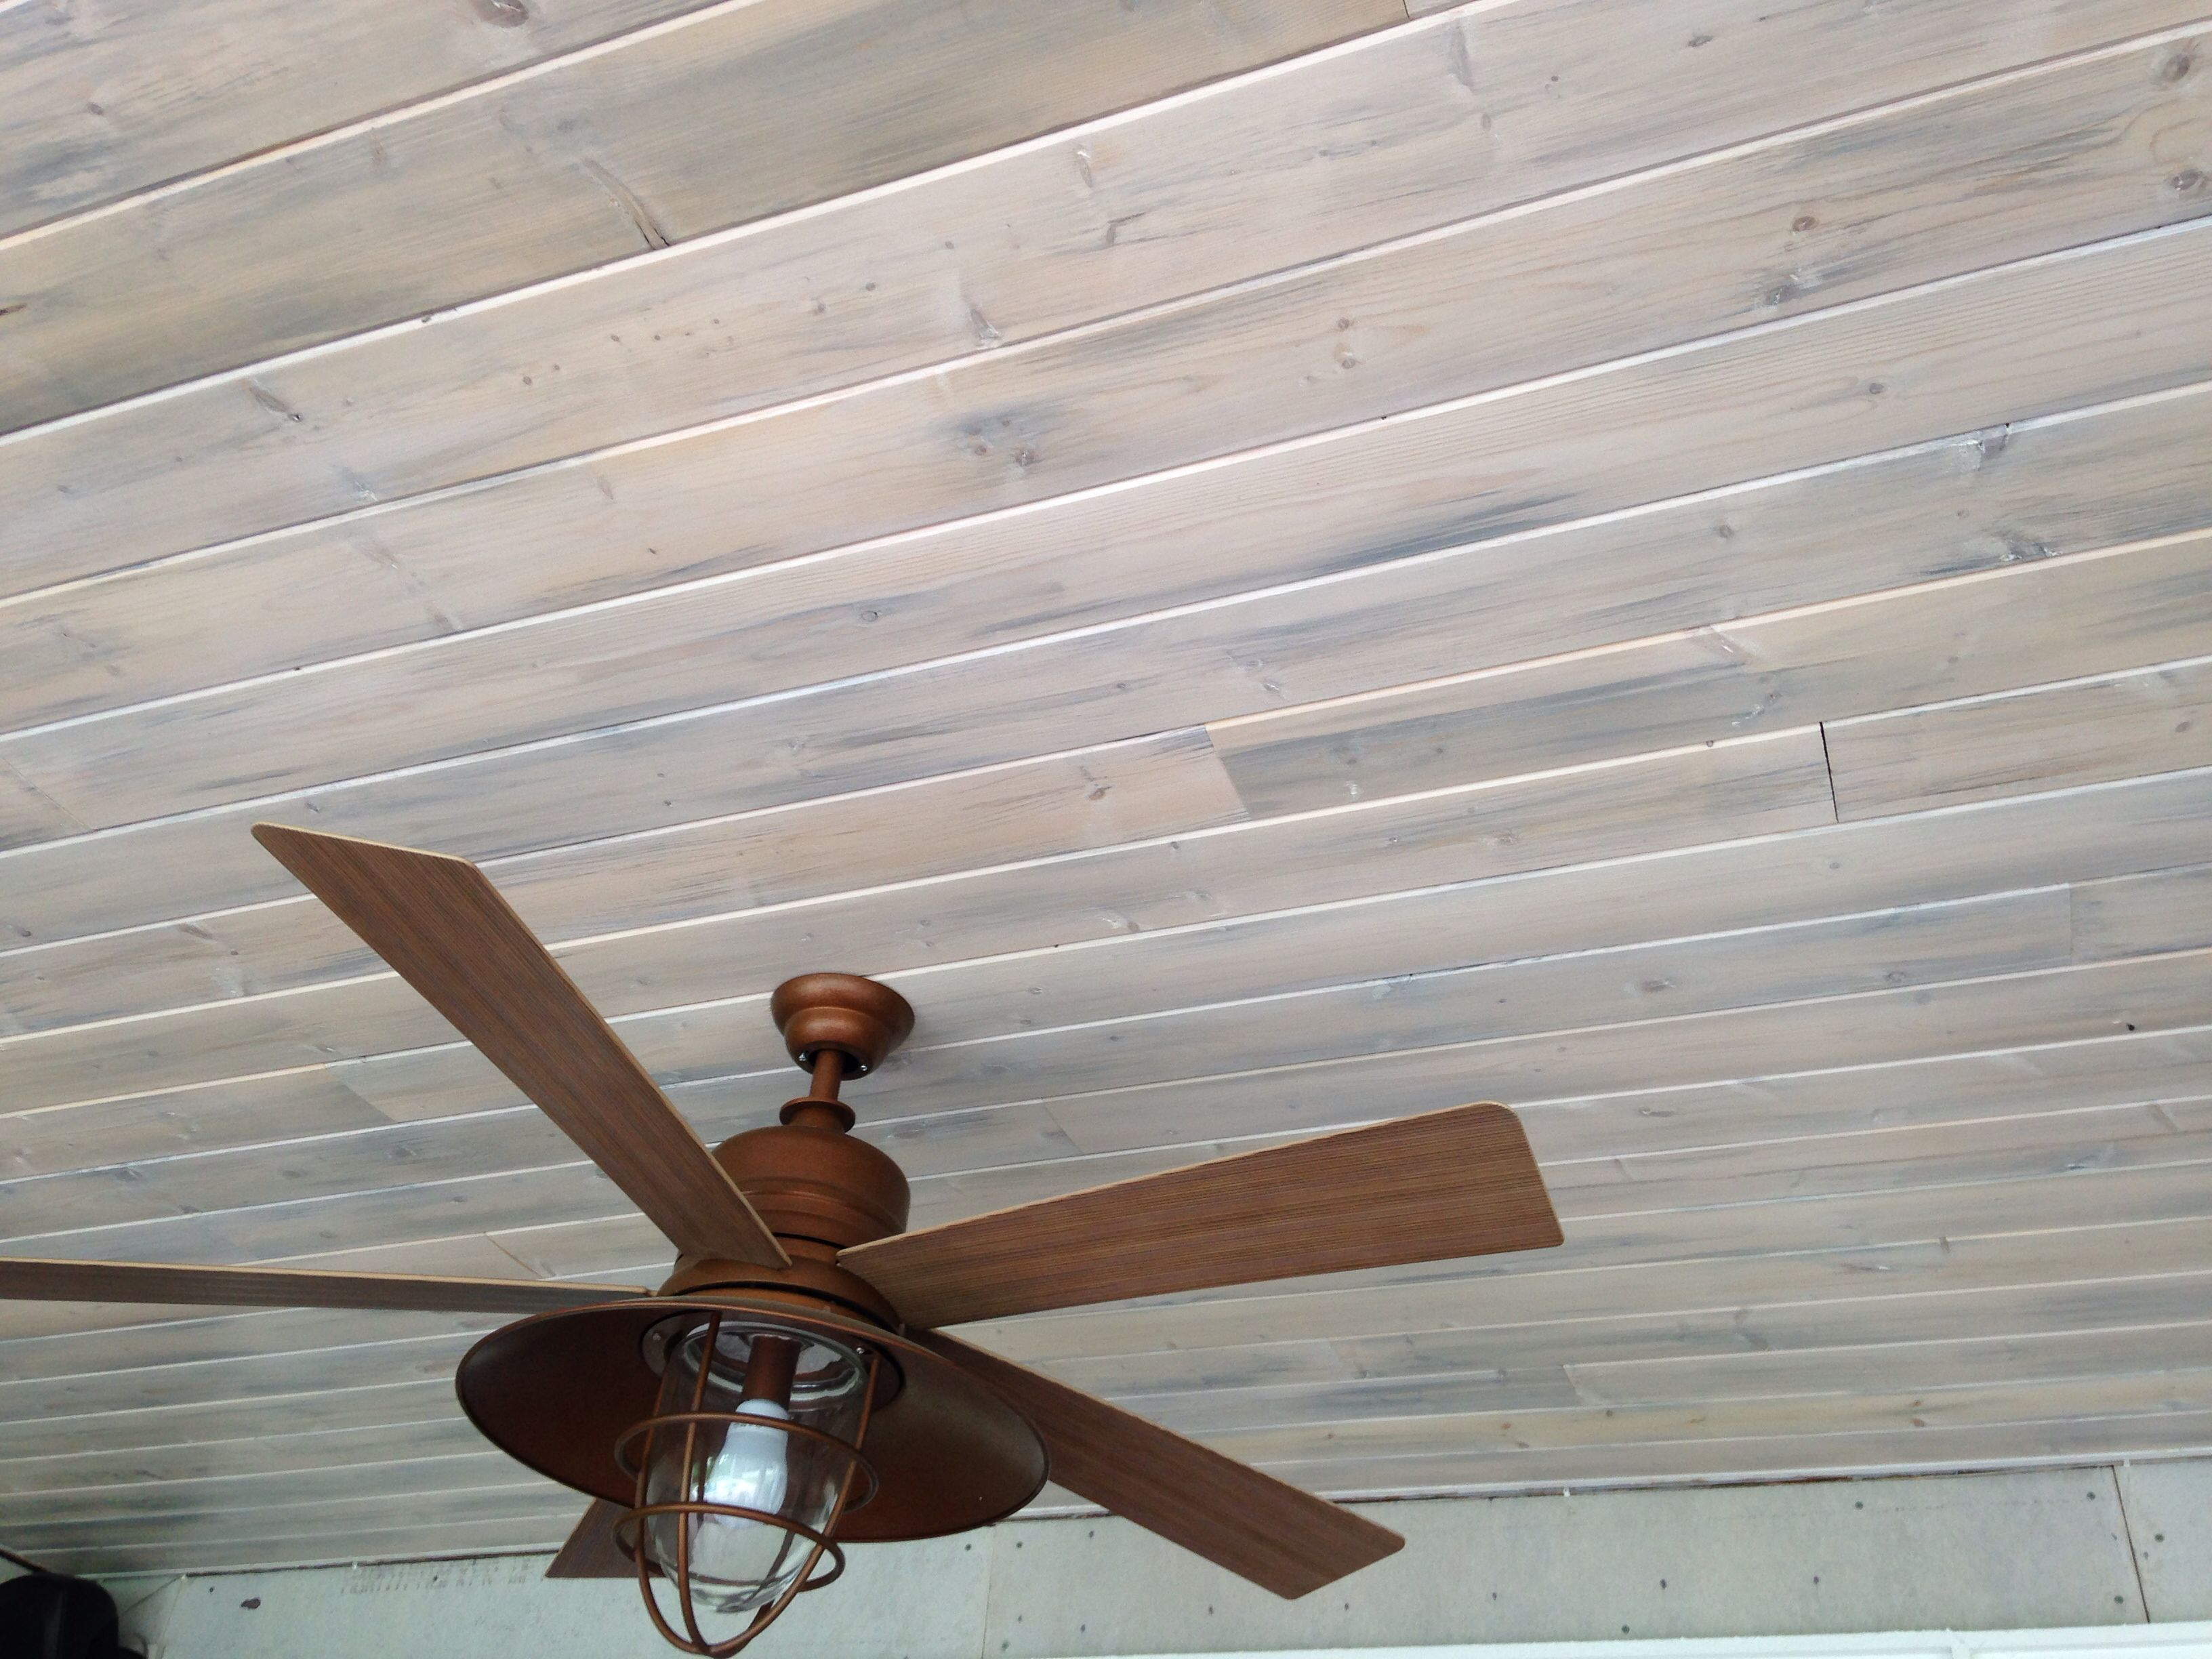 White Washed Wood Ceiling Pine Tongue And Groove Porch Ceiling In A Dusty Gray Stain With